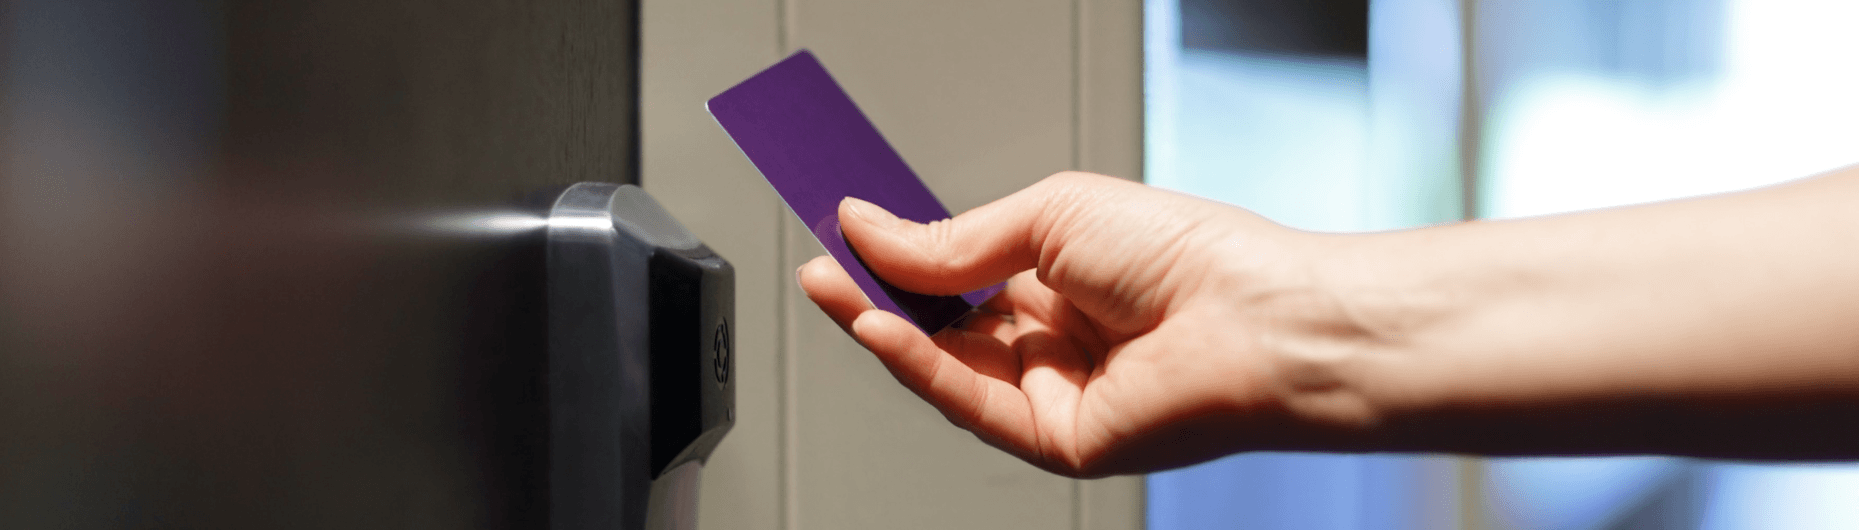 The Integration Of Access Control With Other Systems